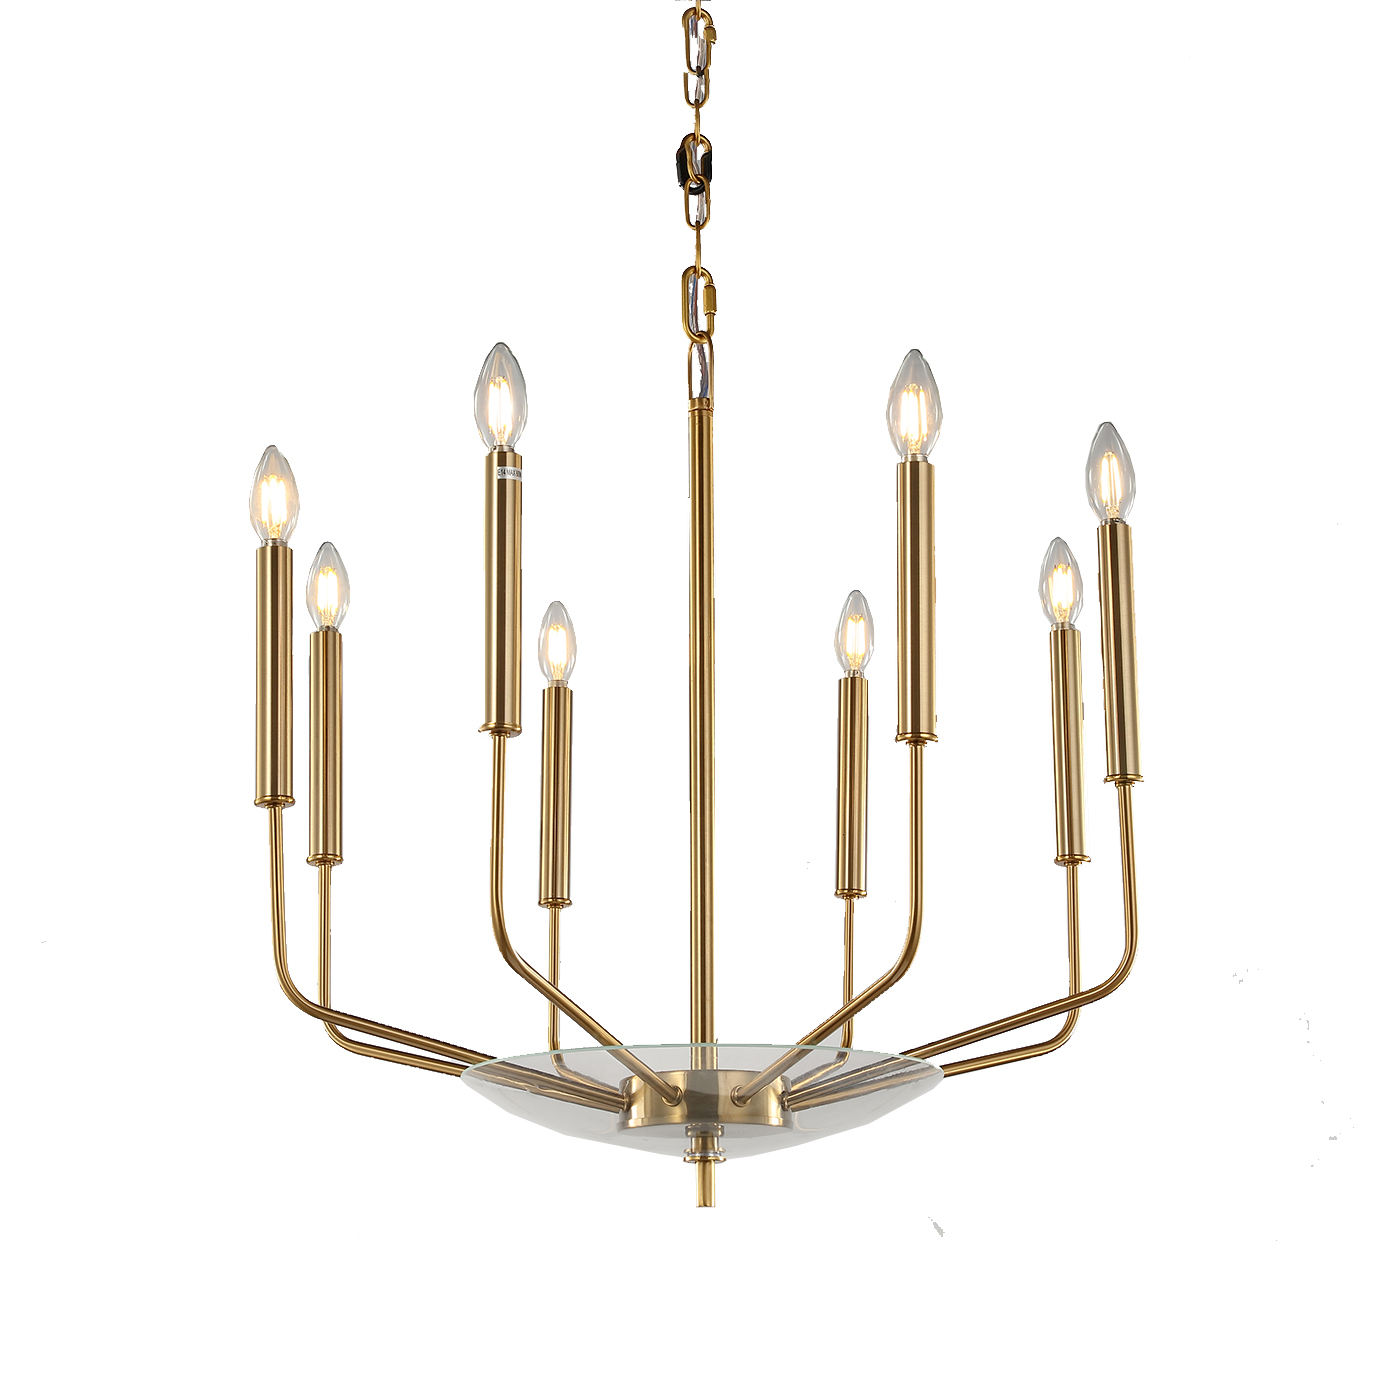 2020 New Modern American Candle Style Iron Chandelier with Brass Finish and Clear Glass Candle Pendant Light for Bedroom Kitchen